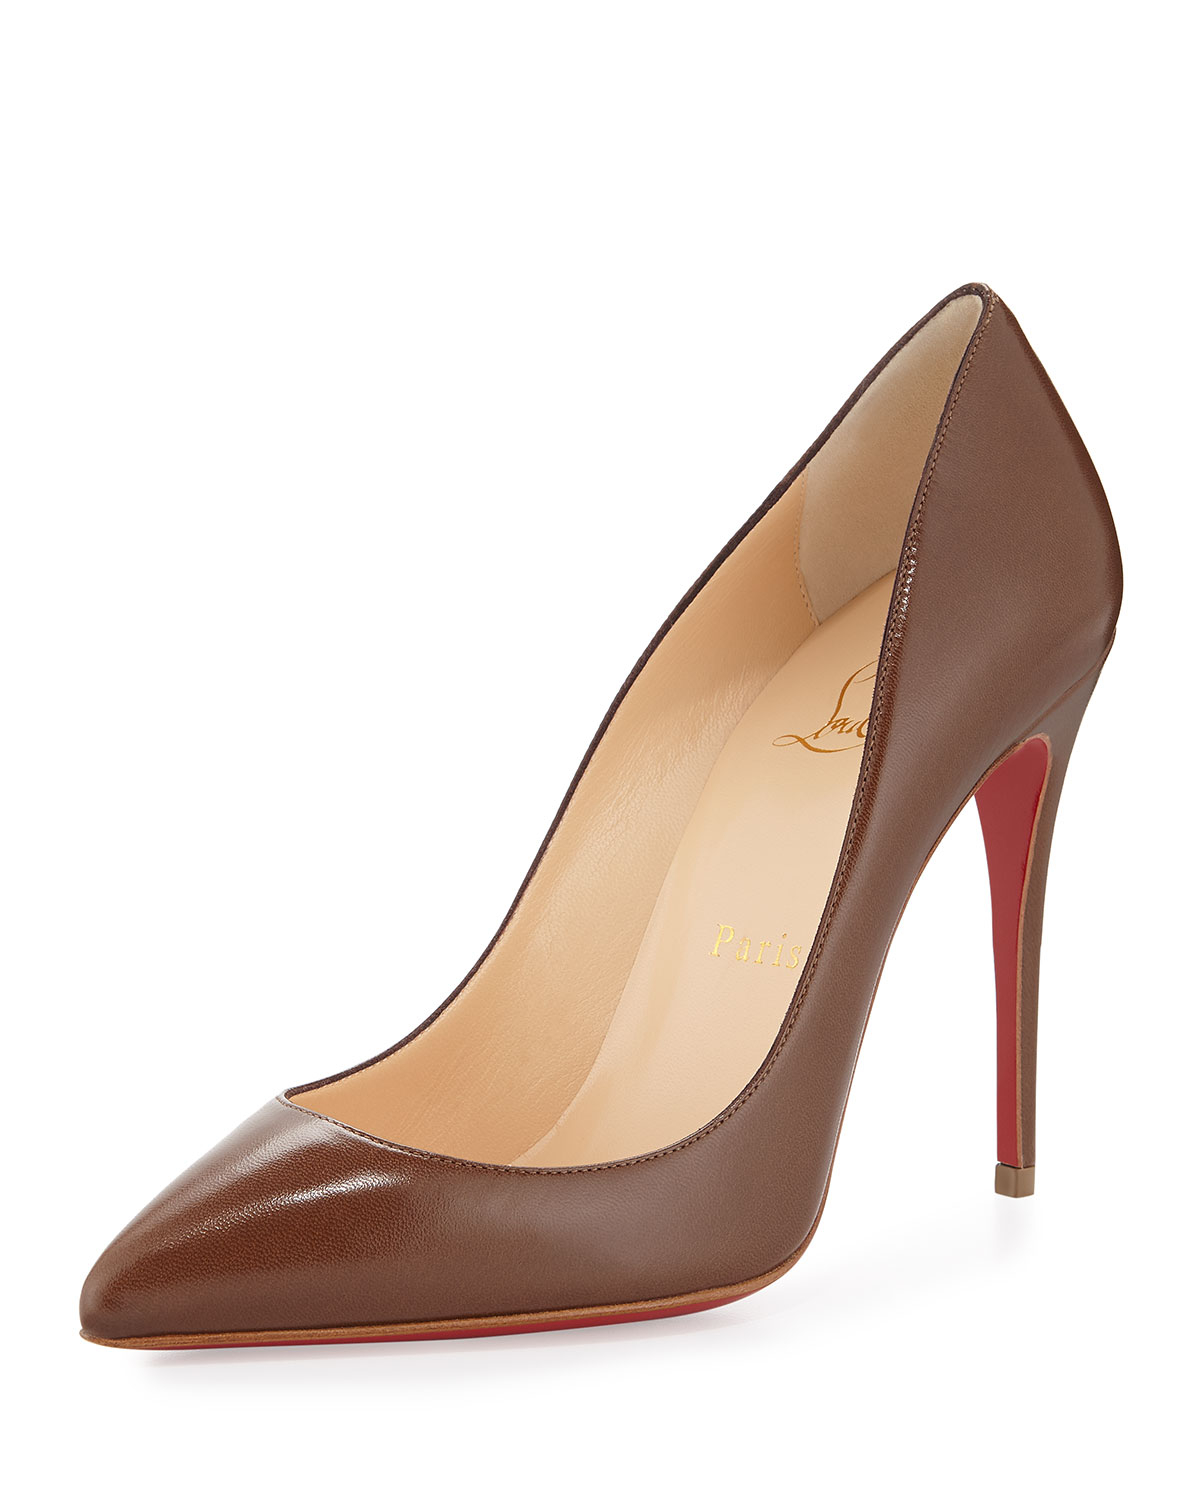 881916803d0 Gallery. Previously sold at  Bergdorf Goodman · Women s Christian Louboutin  Pigalle Women s Floral Pumps ...